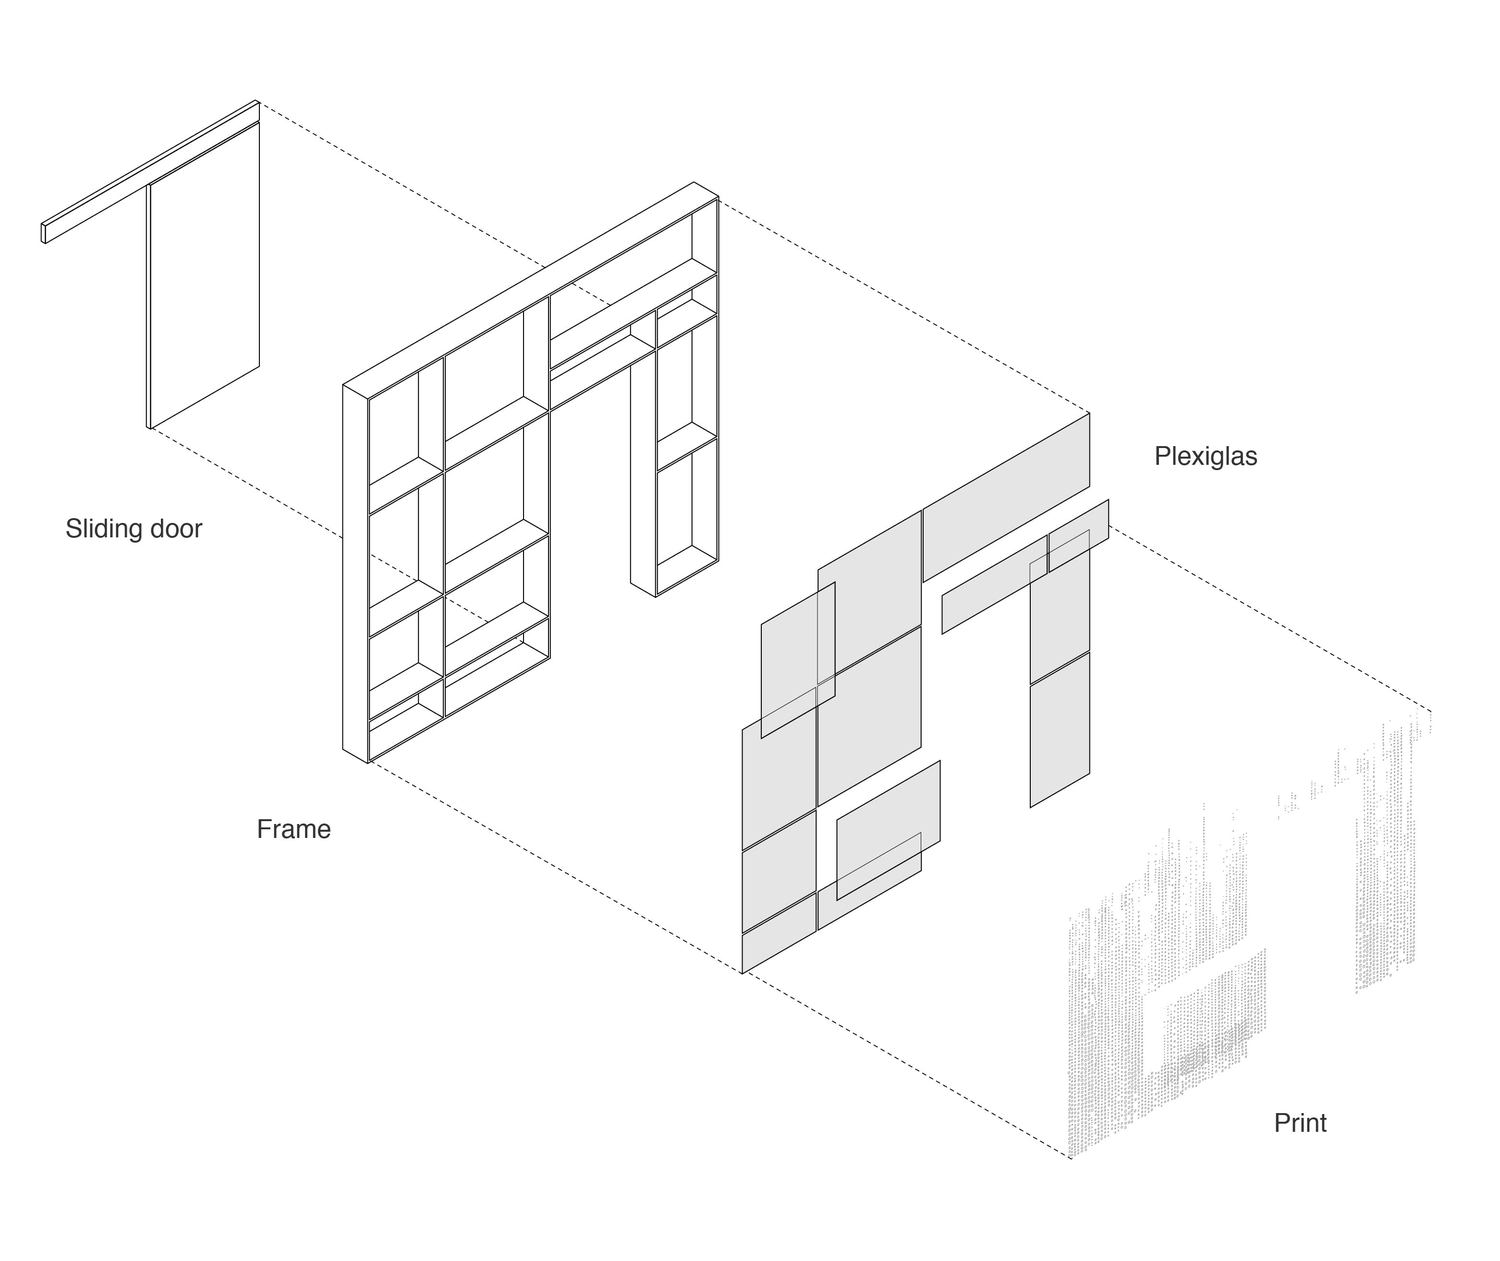 xtra room_diagram_01.jpg